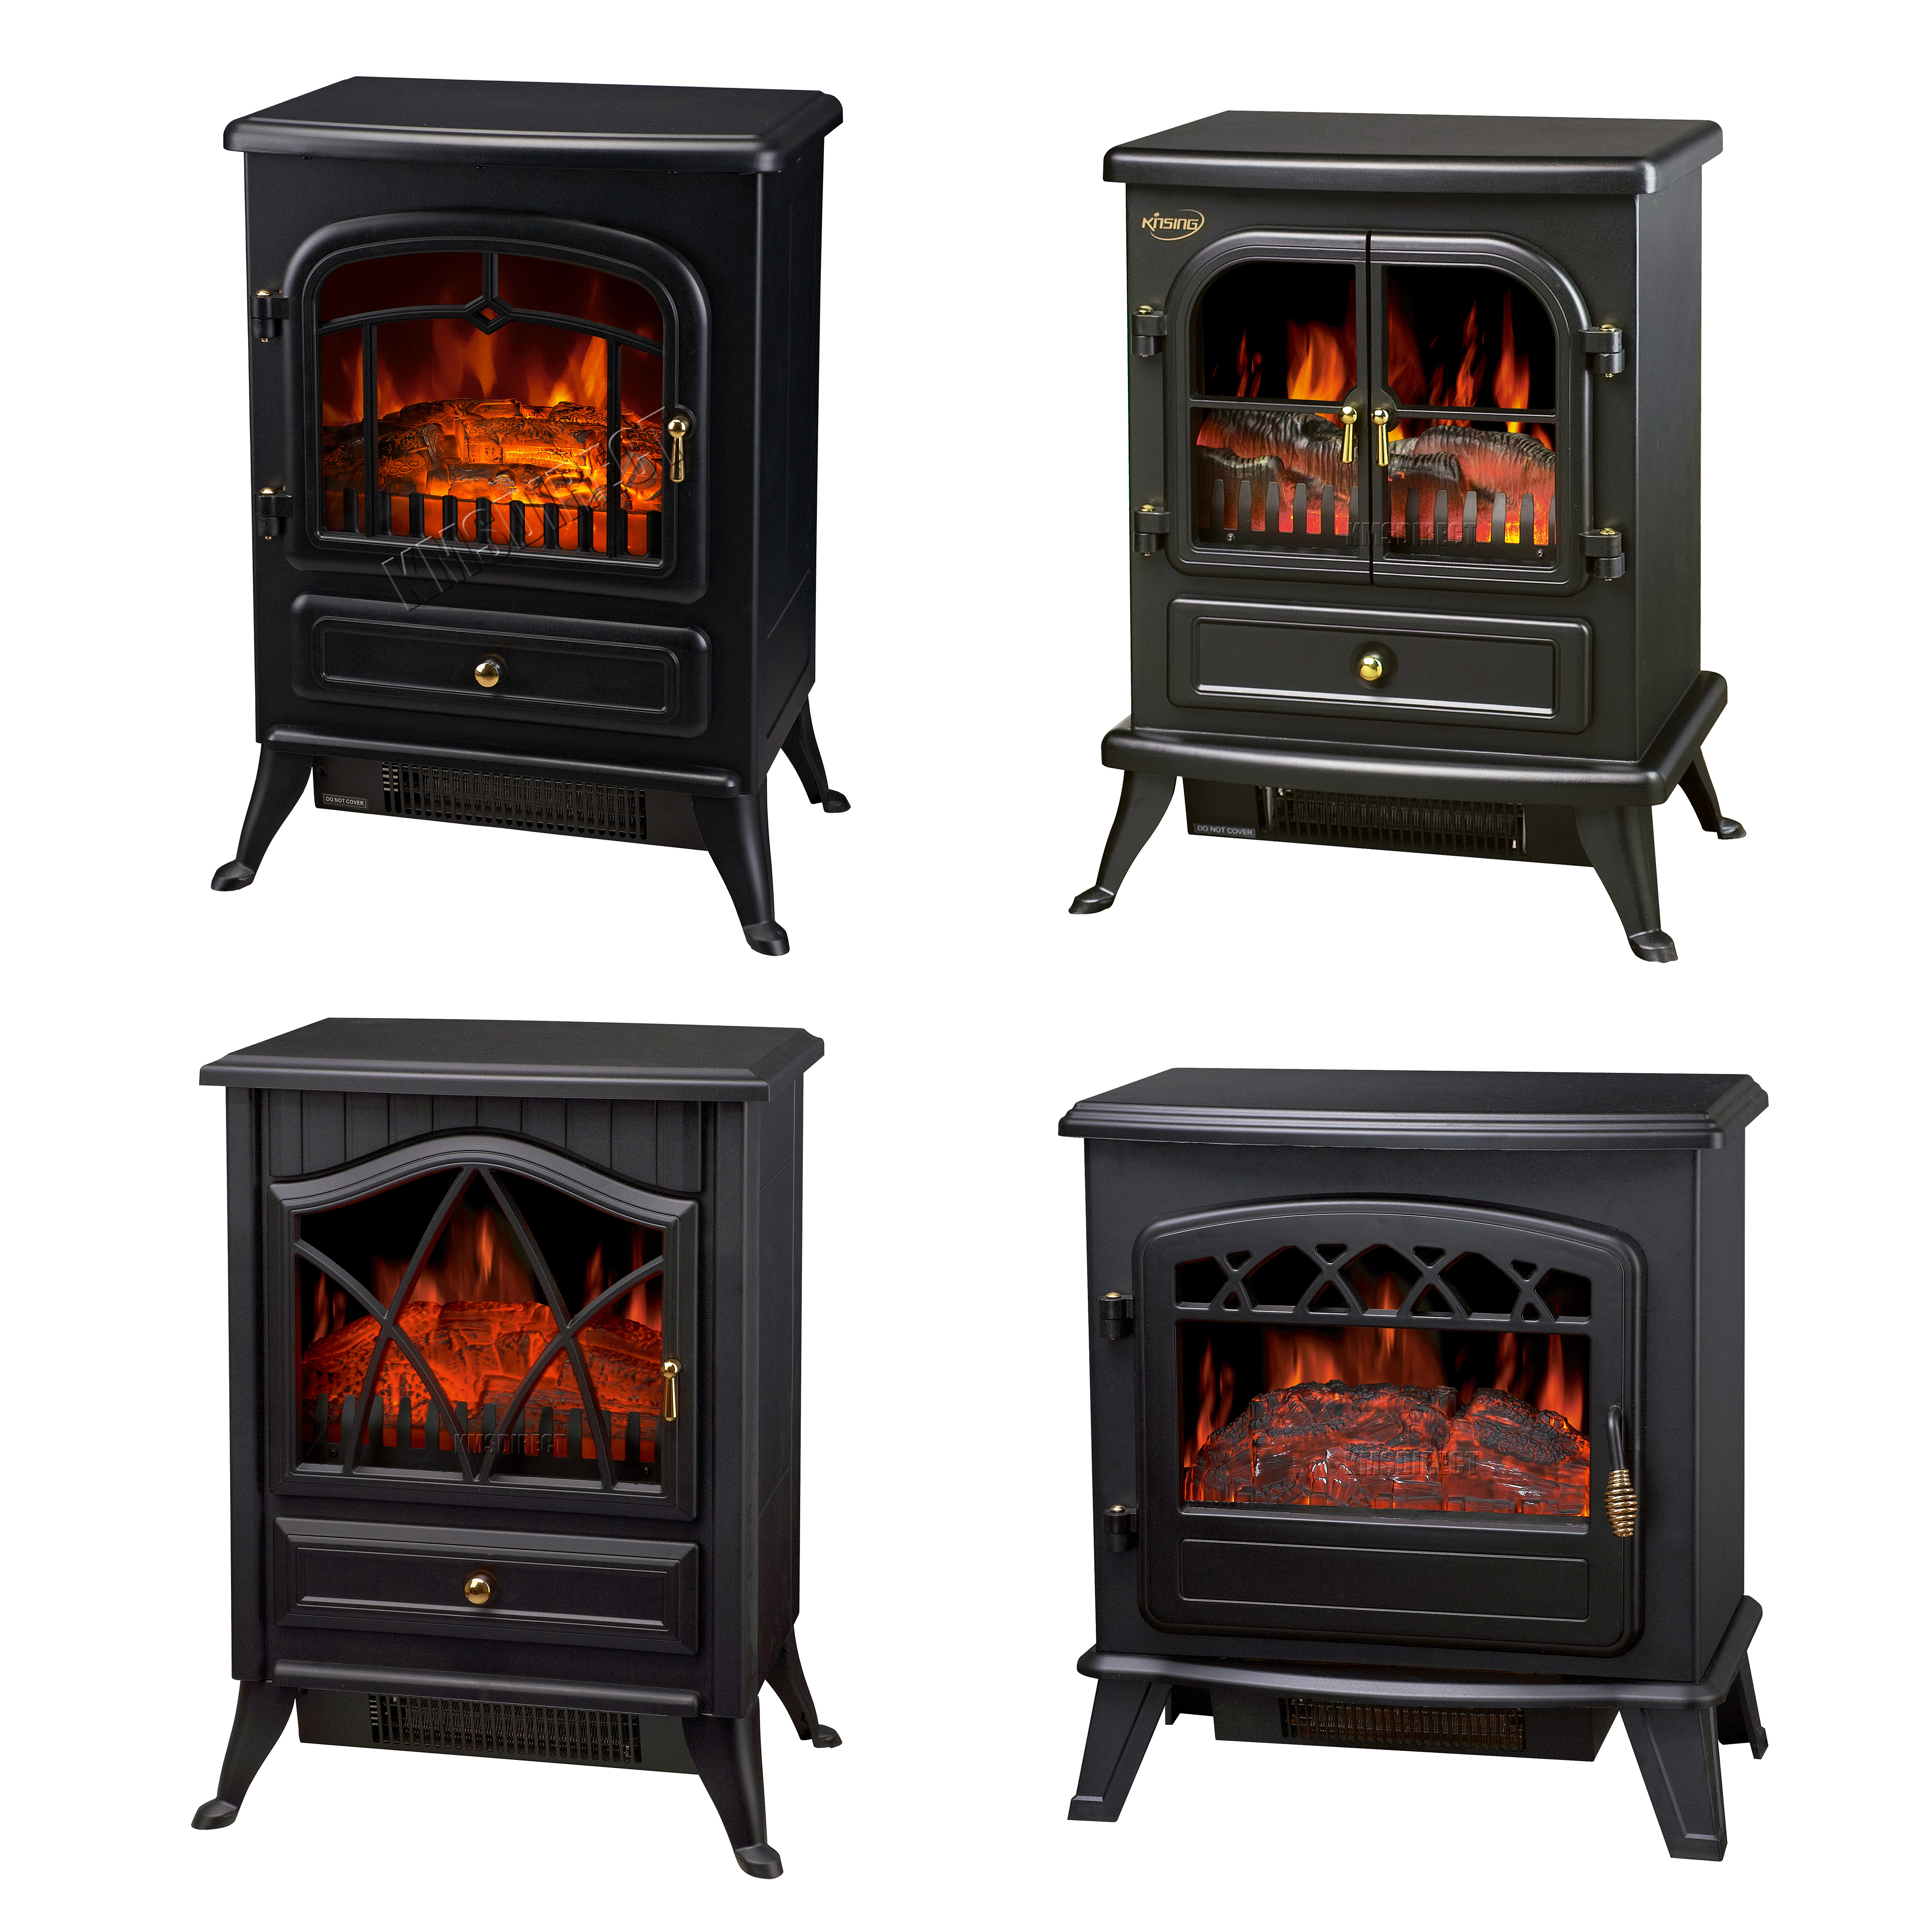 Log Burning Flame Effect 1850w Electric Fire Heater Standing Fireplace Stove Fan Ebay